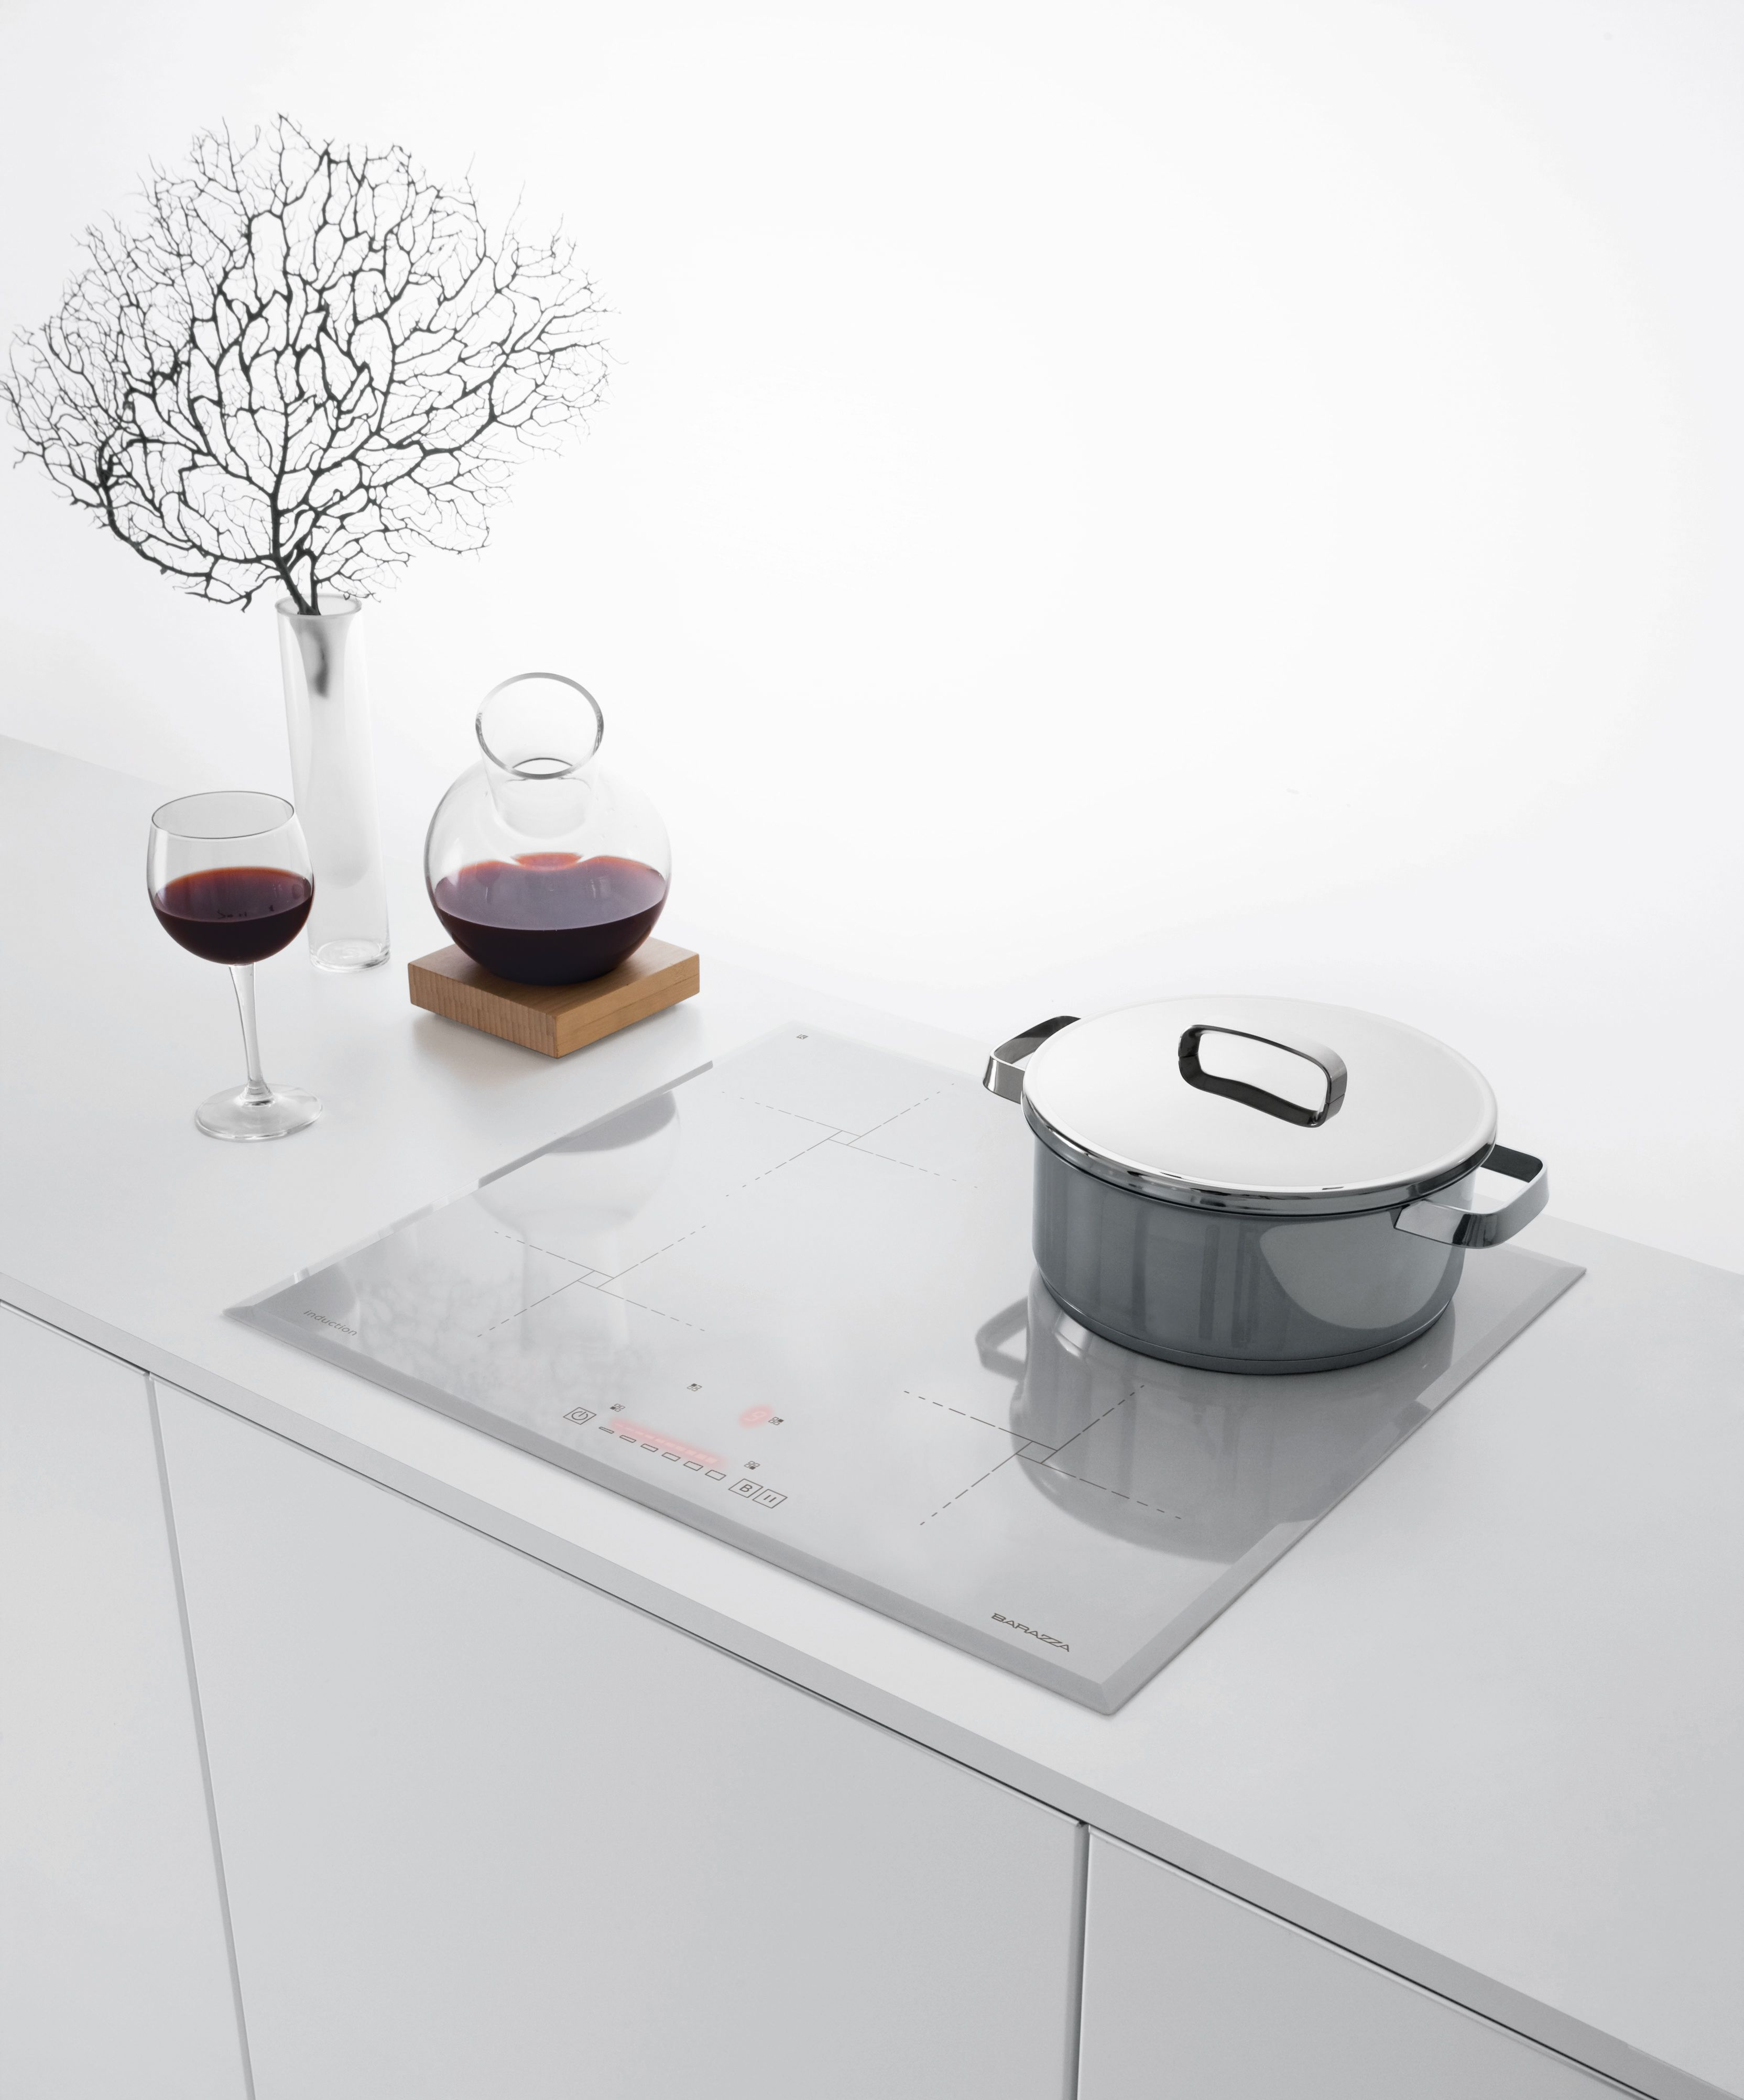 Uncategorized Kitchen Appliances Manufacturer italian appliance manufacturer barazza have jumped on the white cooktop bandwagon with a 60cm induction